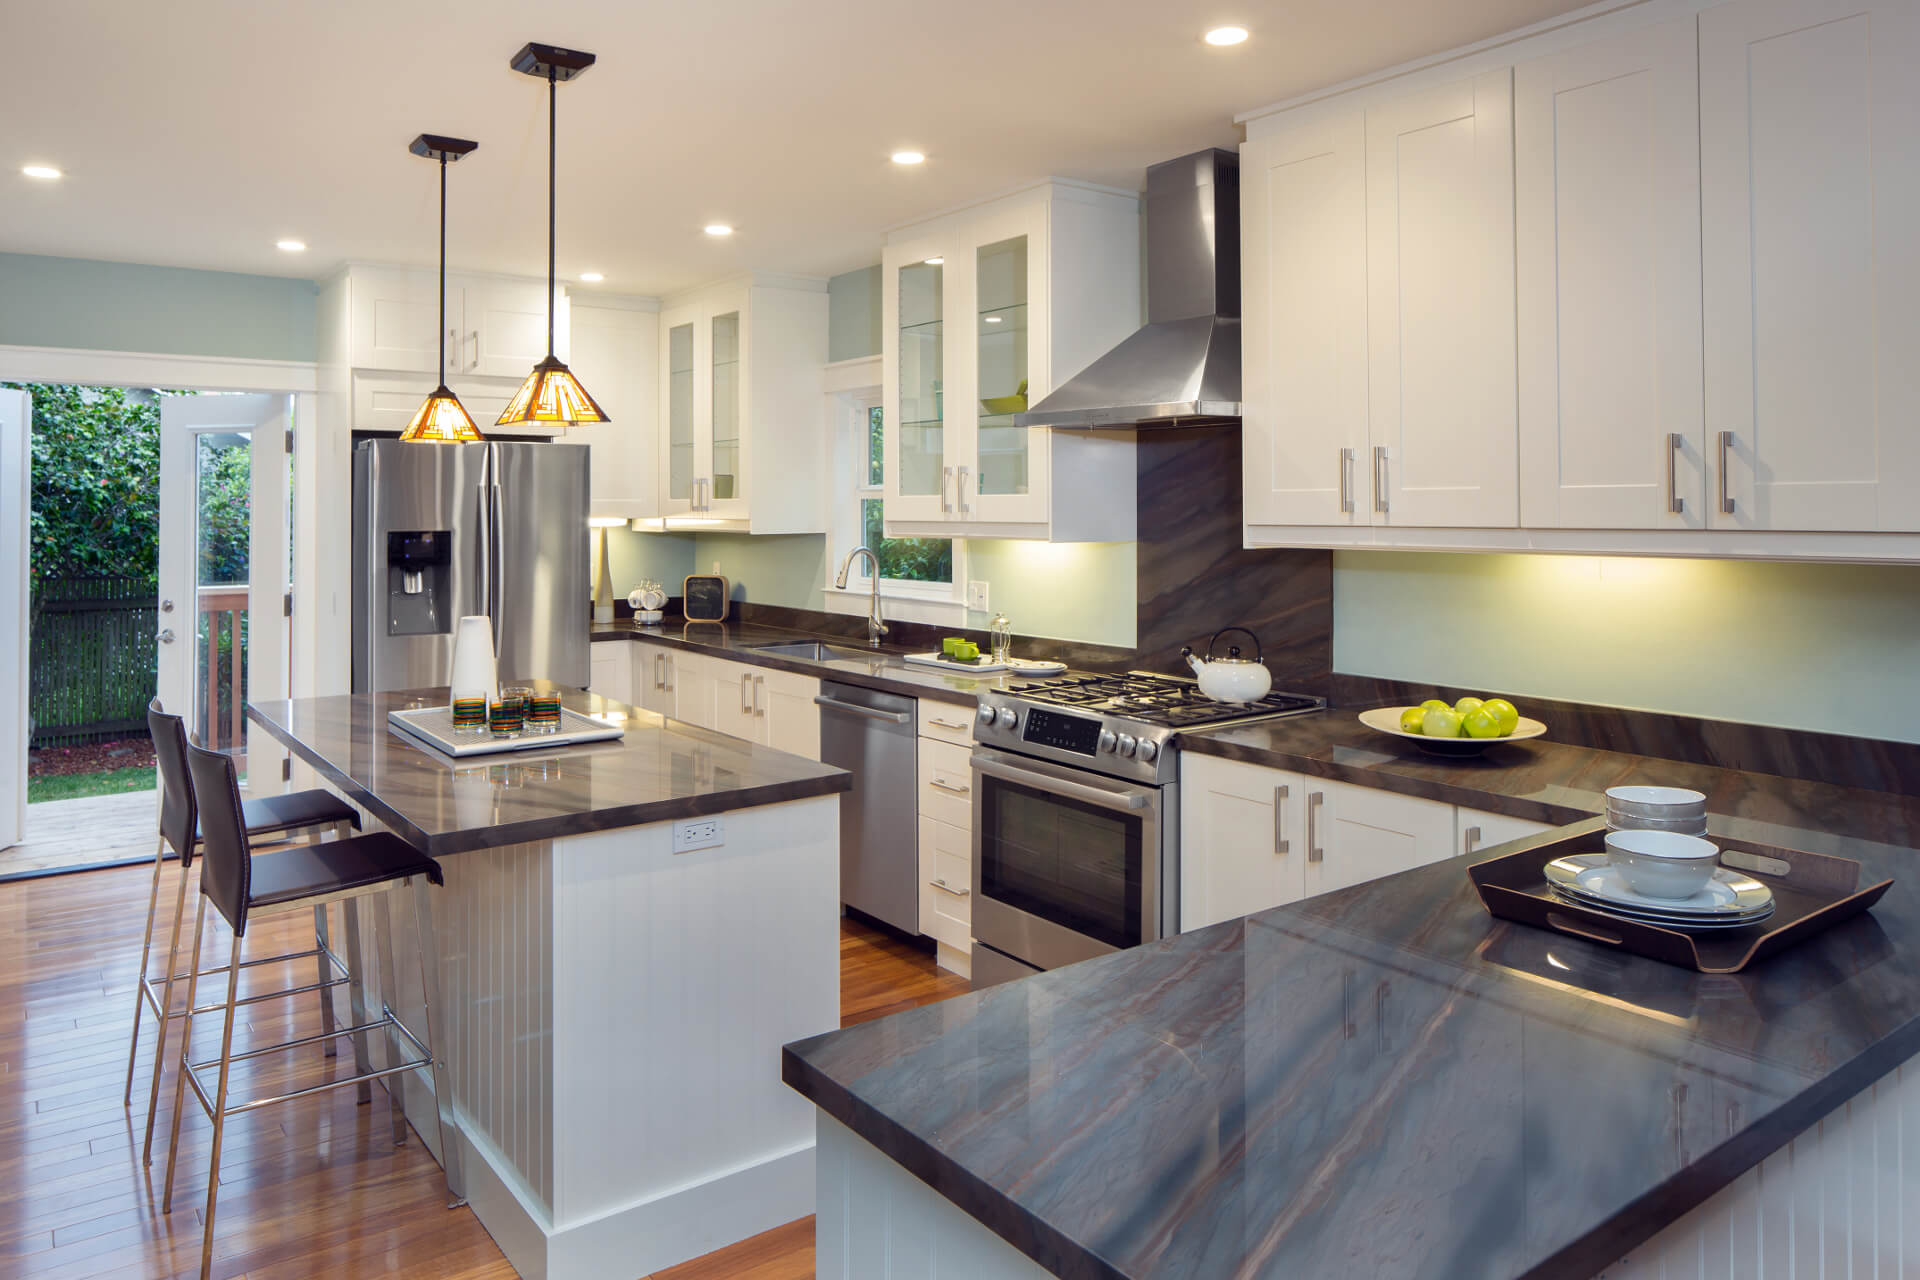 Kitchen Remodeling Contractors Small Kitchen Remodel Kitchen Granite Small Kitchen Remodel